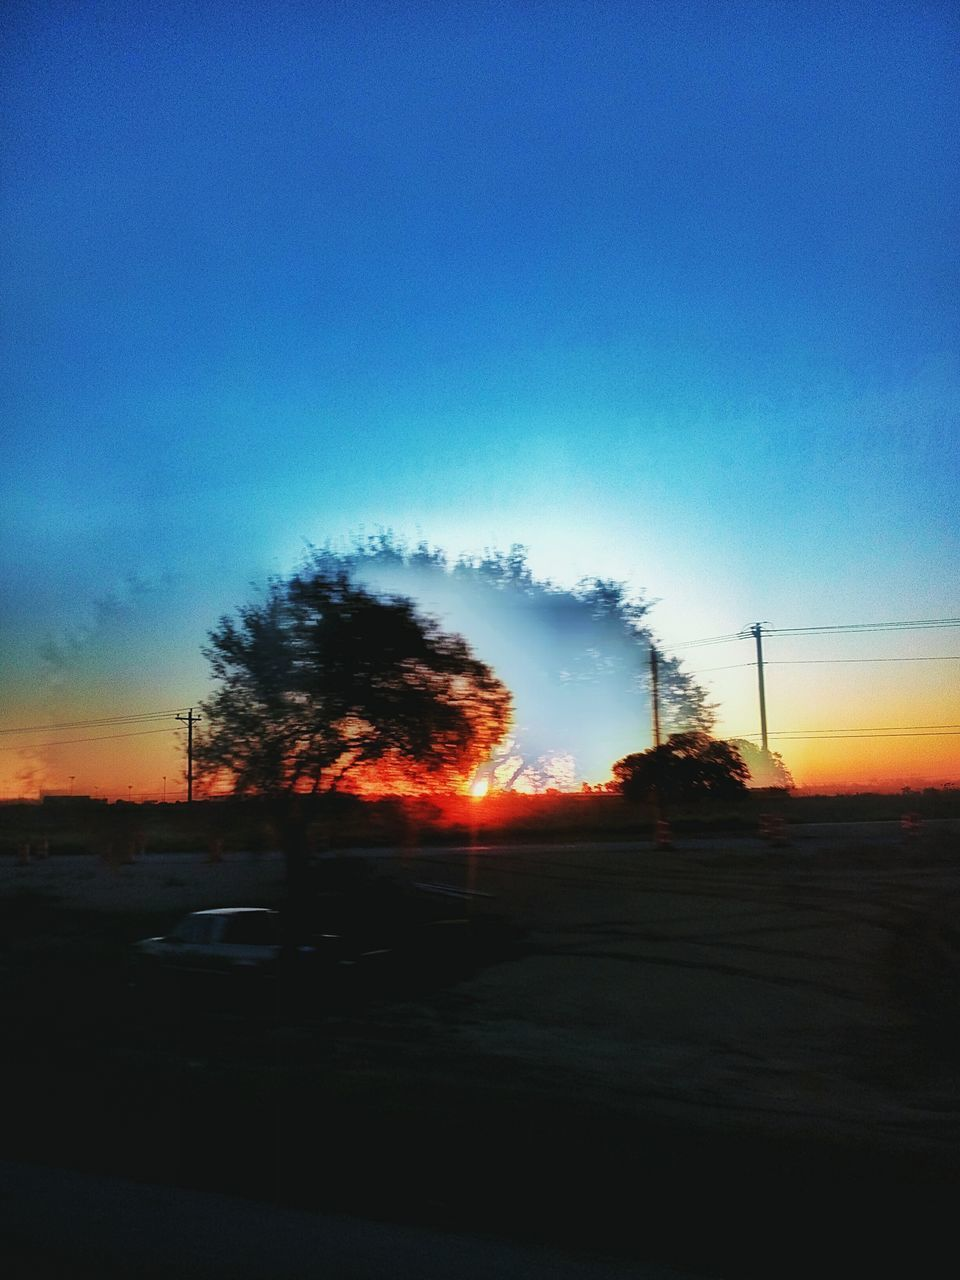 sunset, silhouette, car, sky, no people, road, blue, tree, land vehicle, outdoors, nature, electricity pylon, clear sky, day